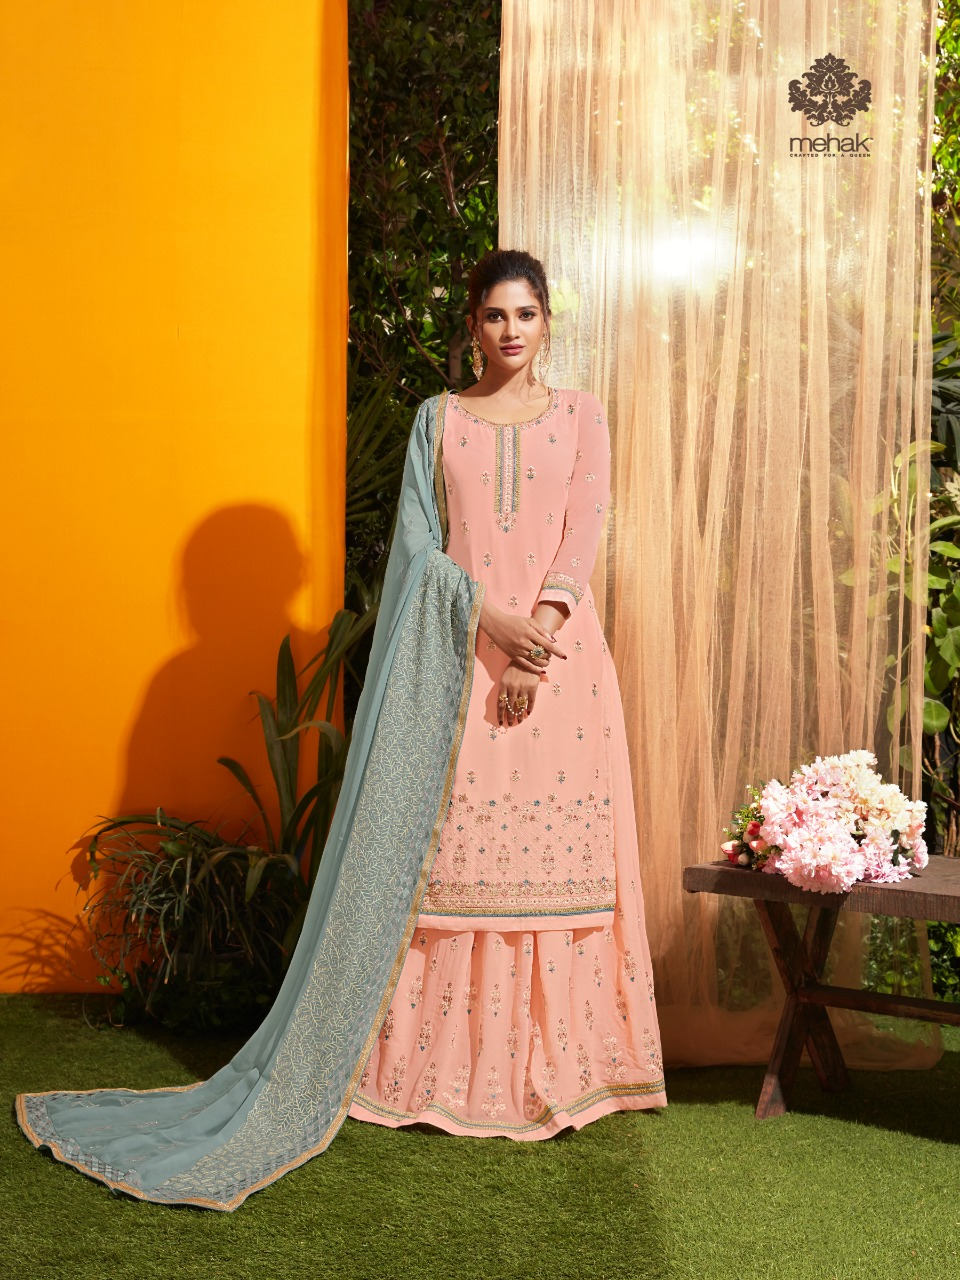 Fashid Wholesale » MEHAK 31001 SERIES BY MEHAK 31001 TO